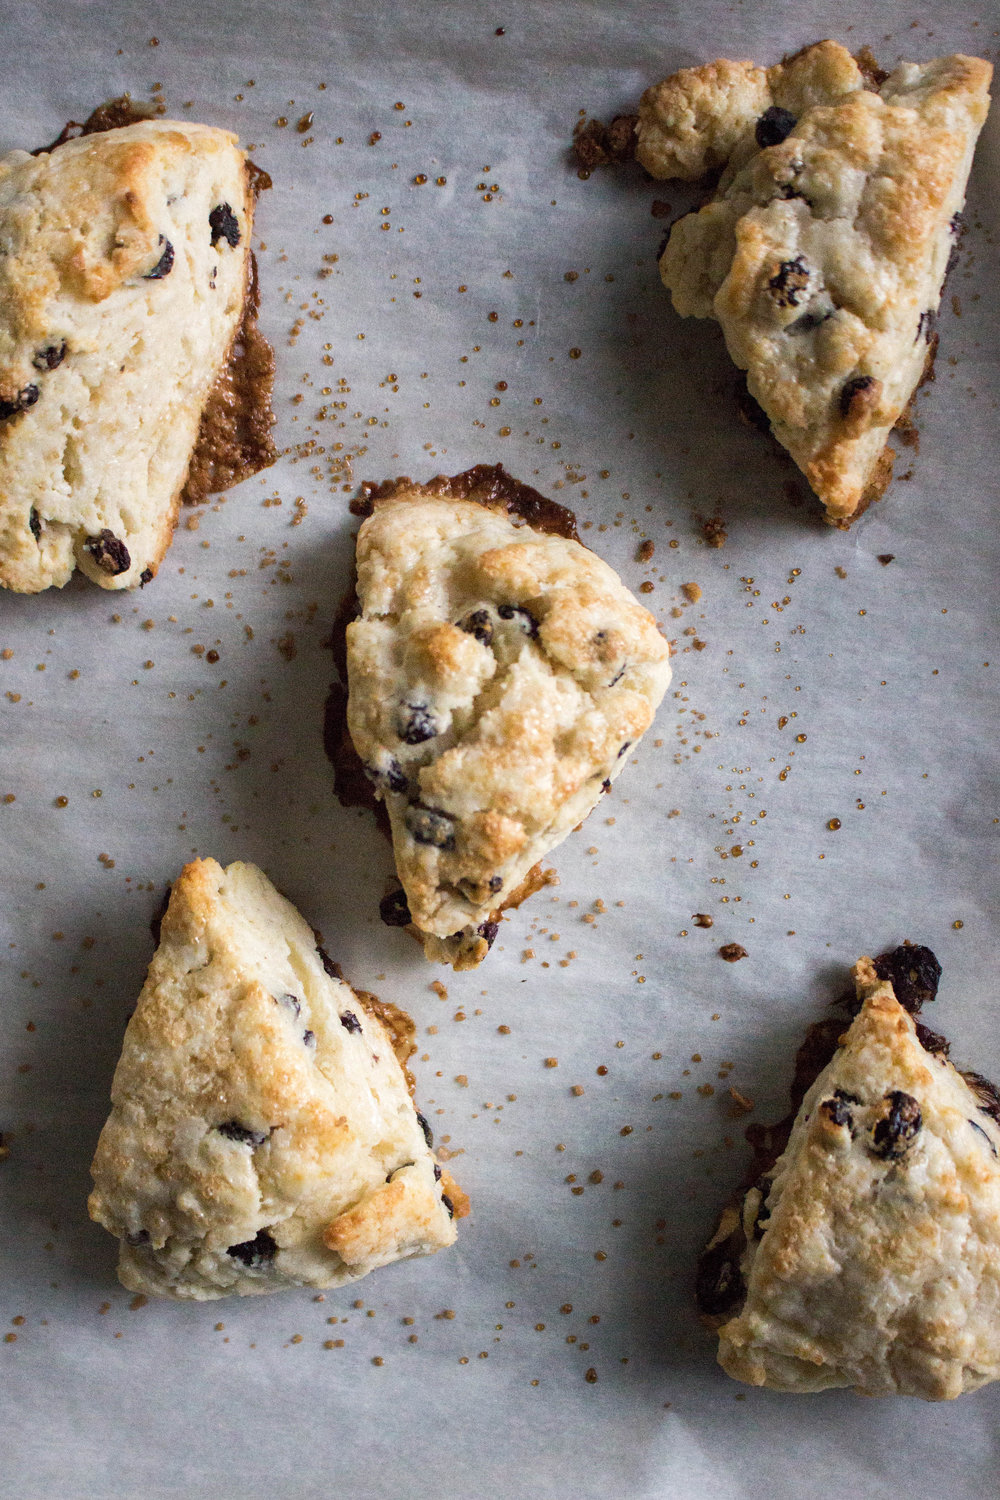 cream scones  - makes 16 small-ish sconesadapted from smitten kitchen 2 cups all-purpose flour1 tablespoon baking powder3 tablespoons granulated sugar1/2 teaspoon salt5 tablespoons chilled, unsalted butter, cut into 1/4-inch cubes1/2 cup currants or dried blueberries1 cup heavy cream, plus extra for brushingturbinado sugar, for sprinkling